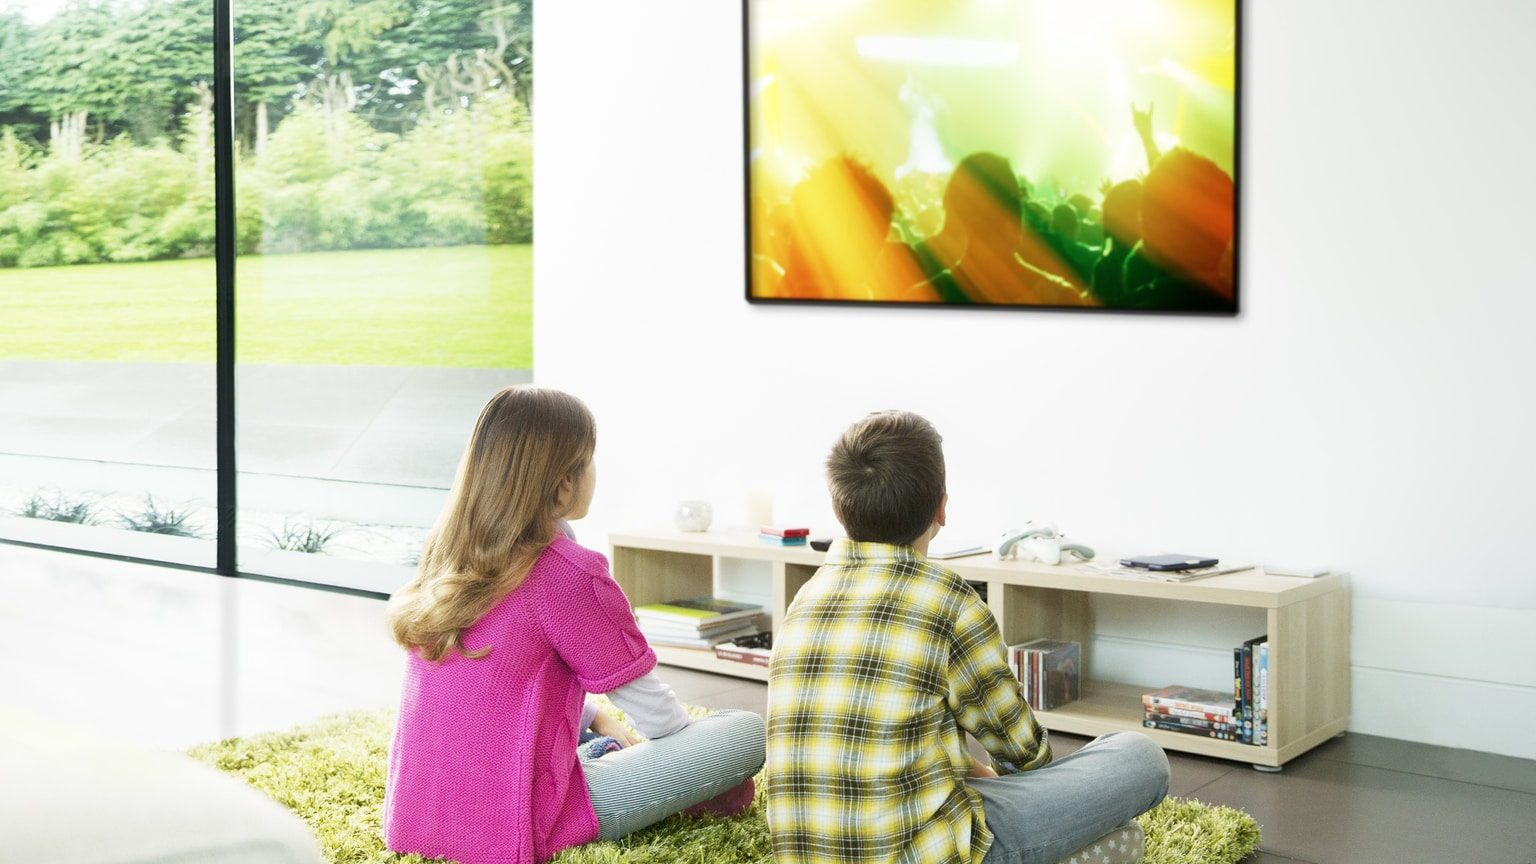 Children sitting in front of a flat screen TV